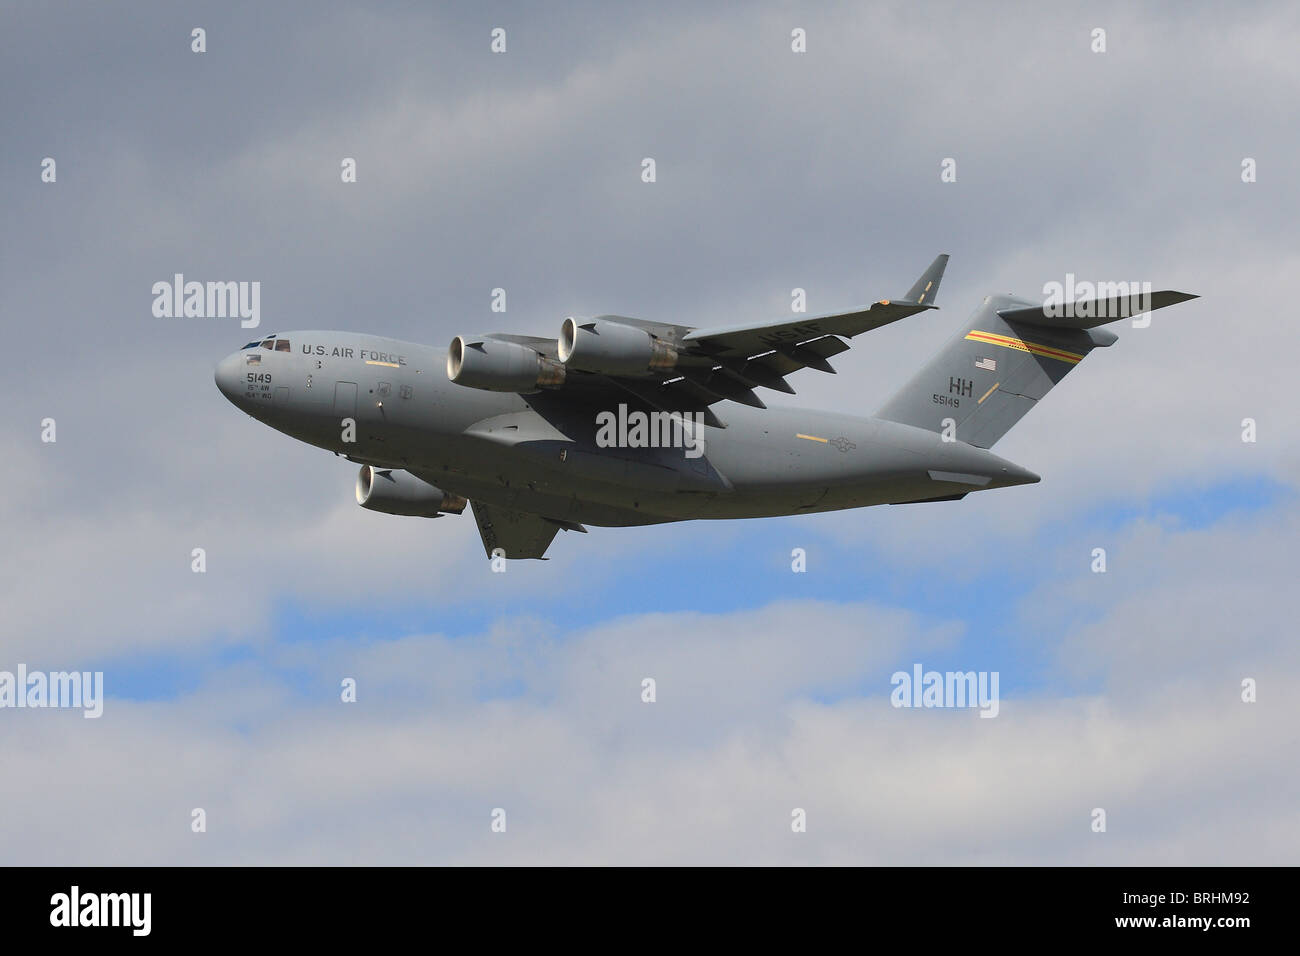 C17 C17A Globemaster USAF Air Force leaving RAF Mildenhall Suffolk HH 5149 Hickman AFB Transporter Heavy Lift Military - Stock Image